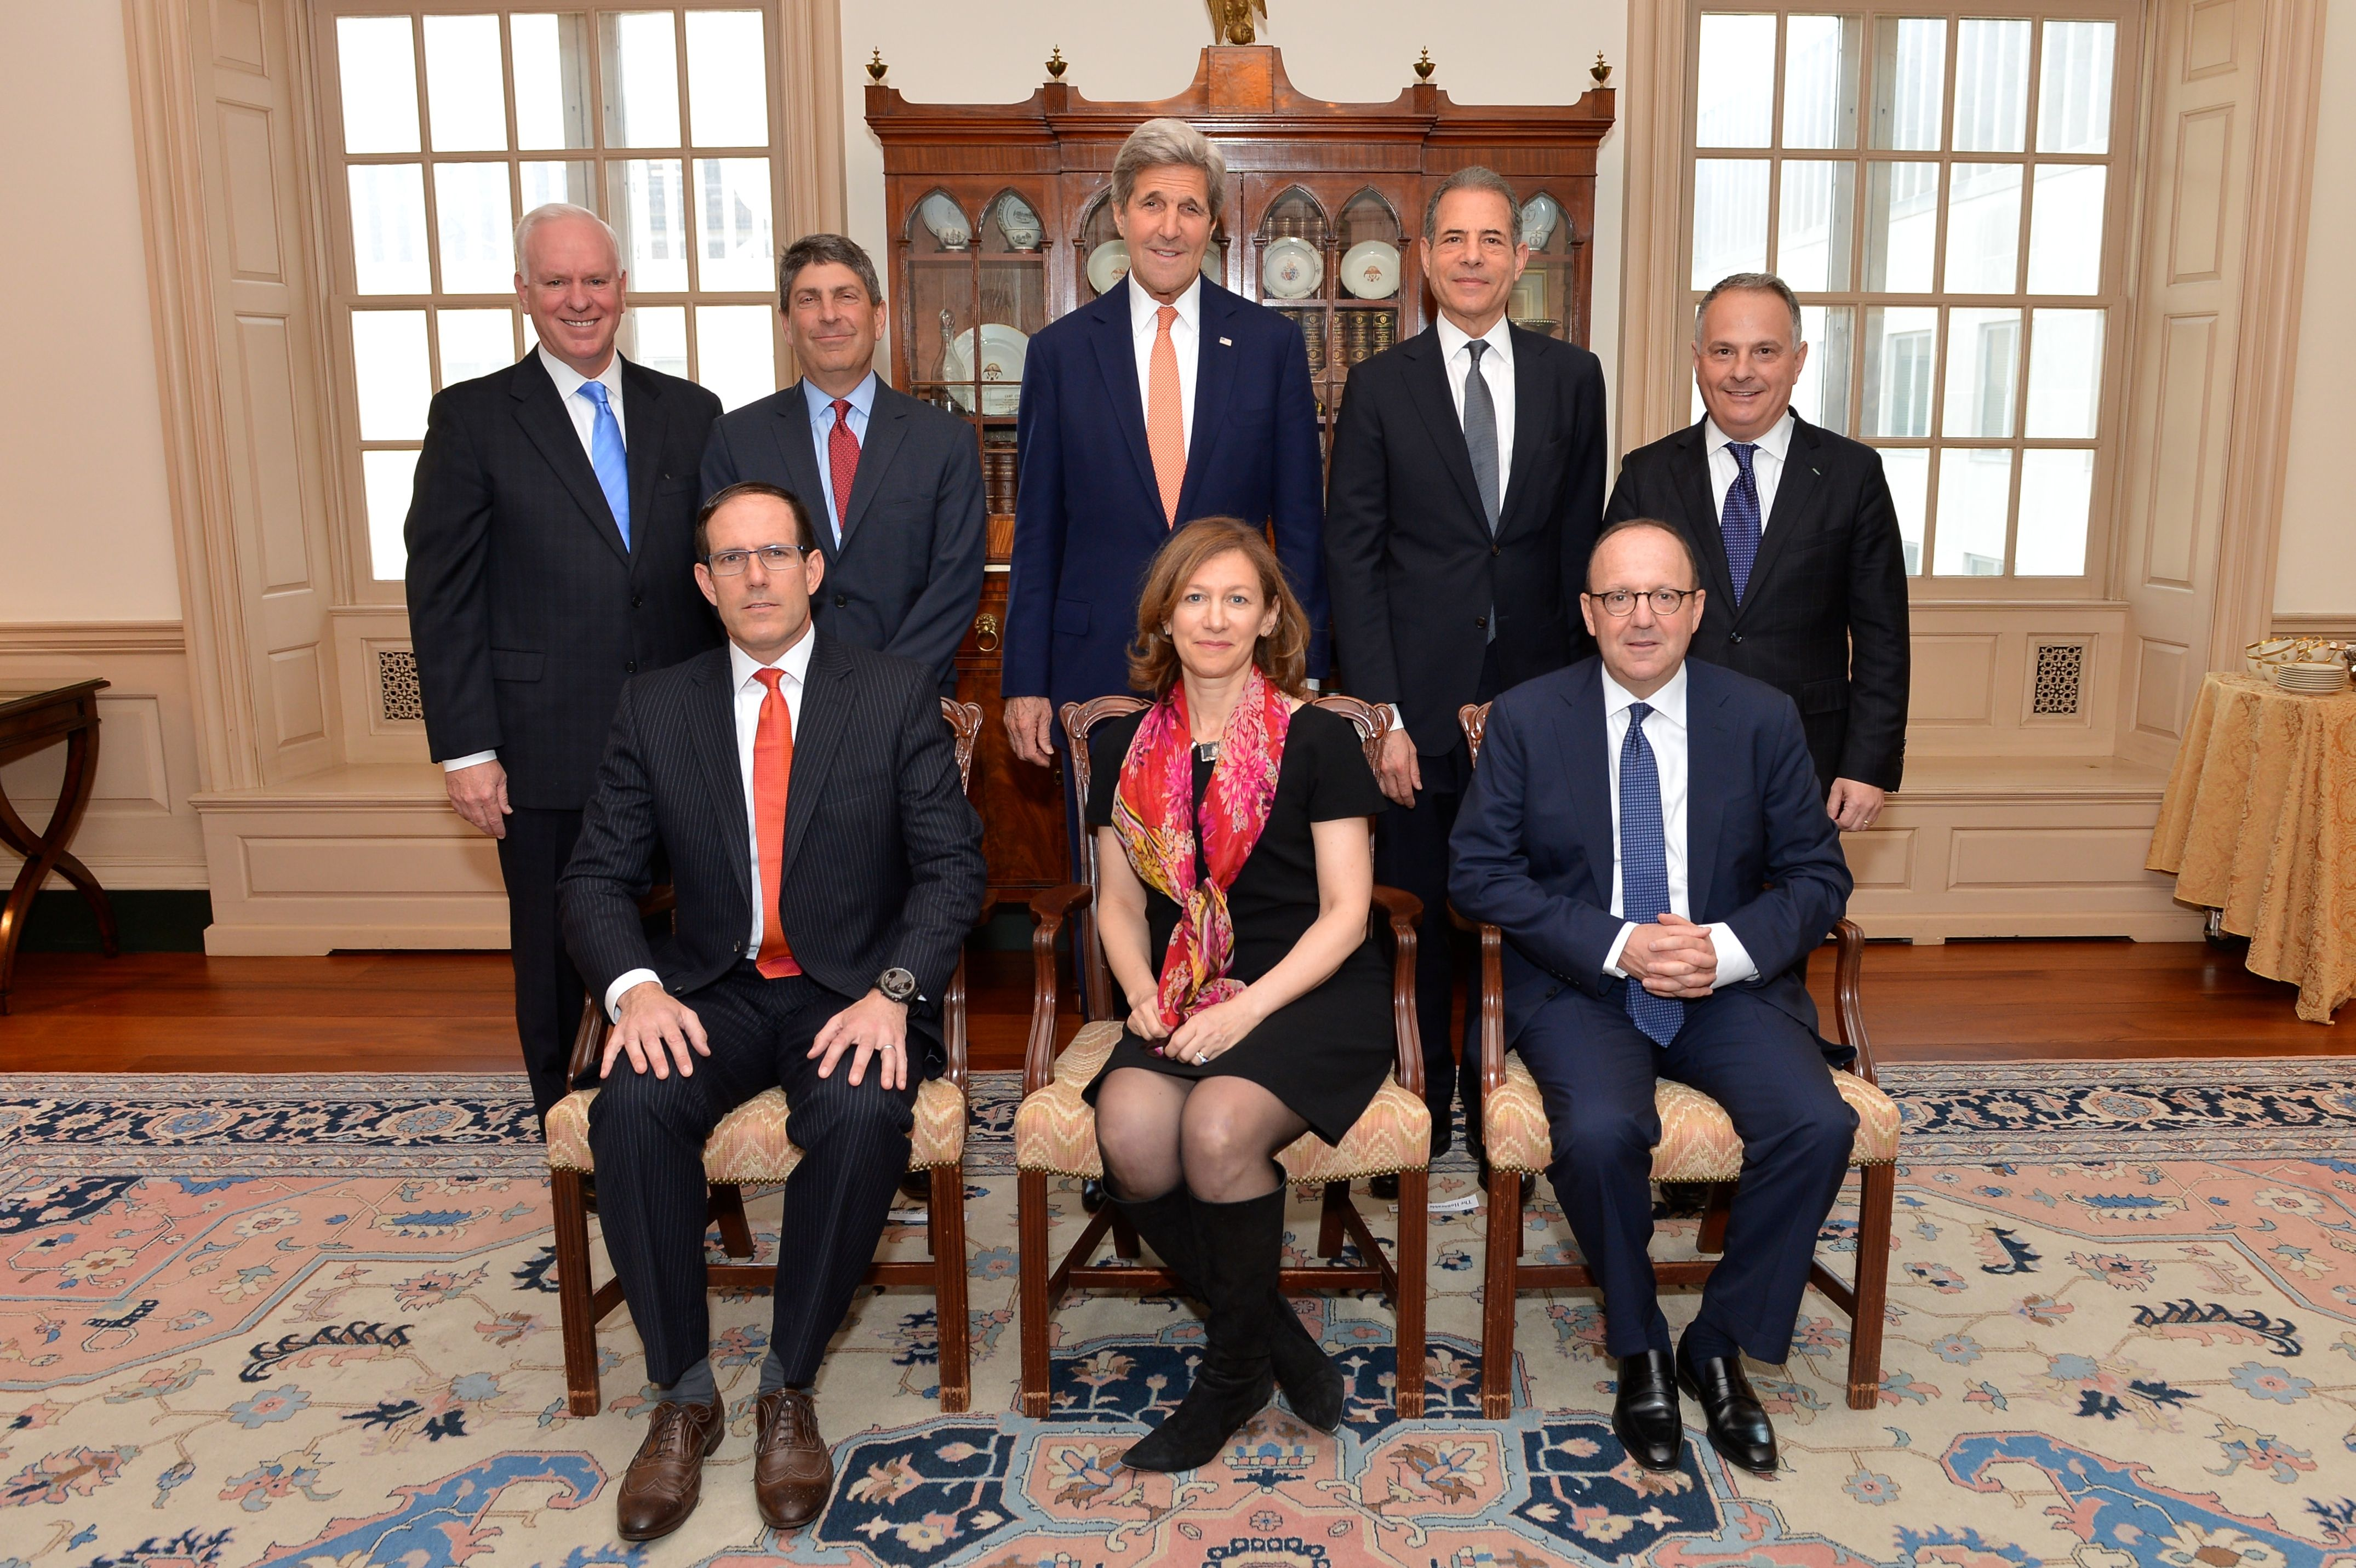 BBG meets with Secretary Kerry, shares key priorities of the Board